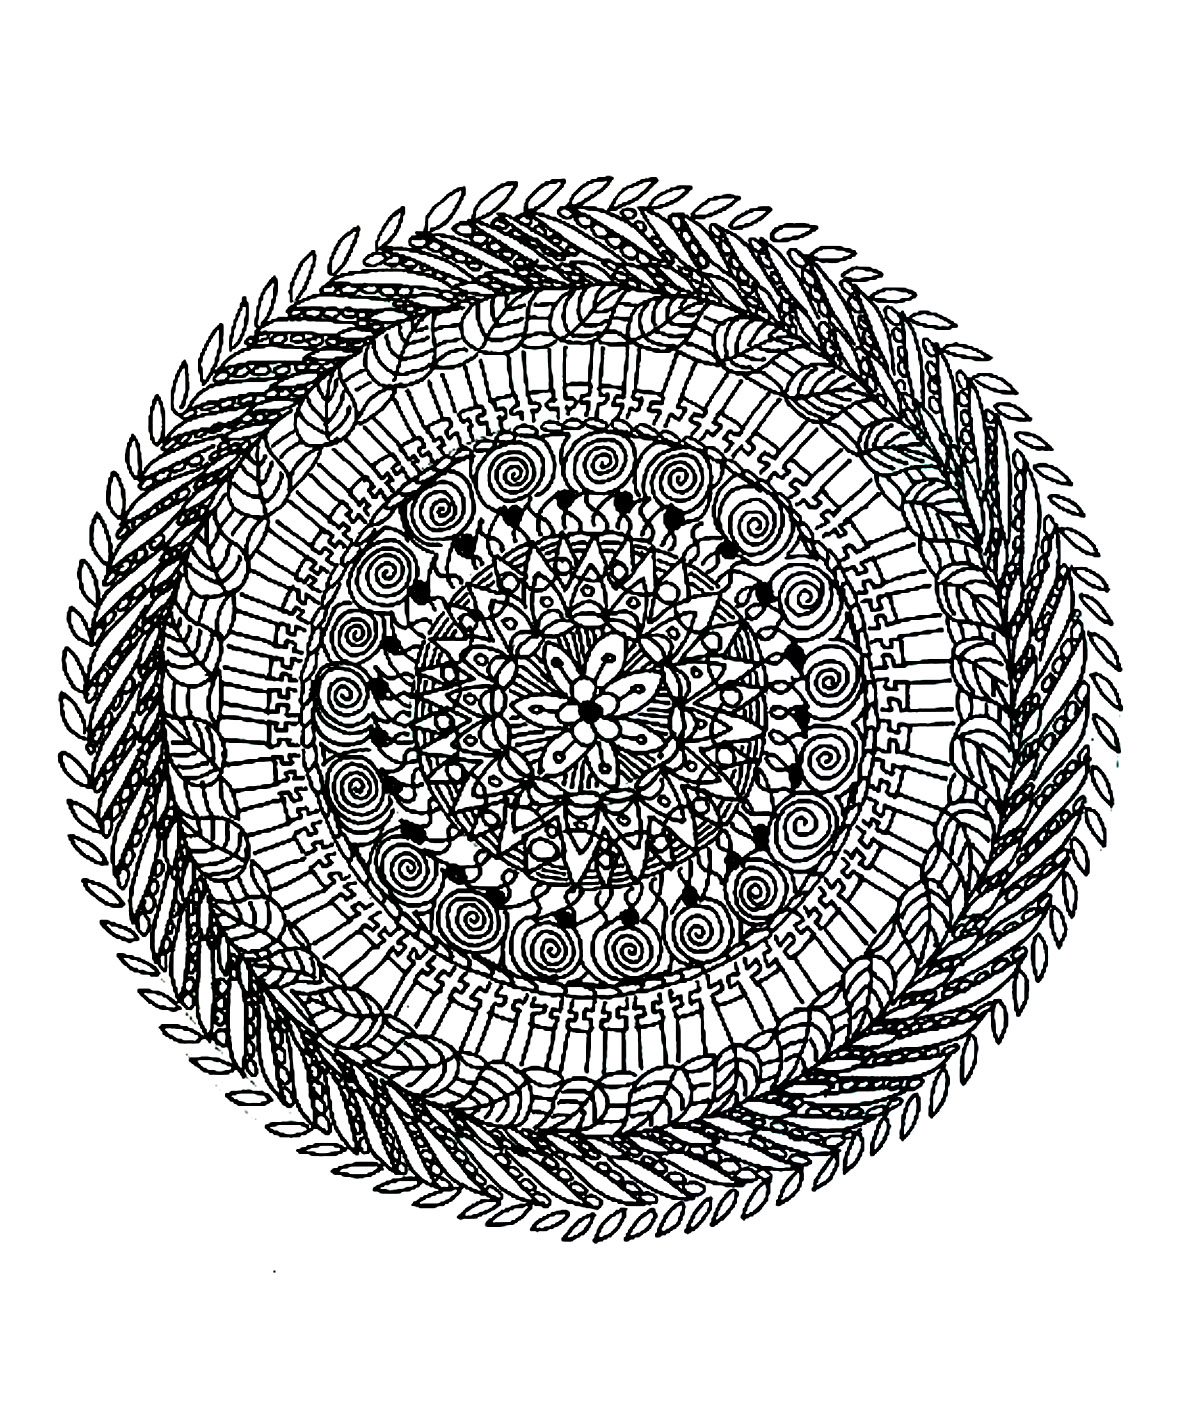 Mandala To Color Very Difficult 1 Very Difficult